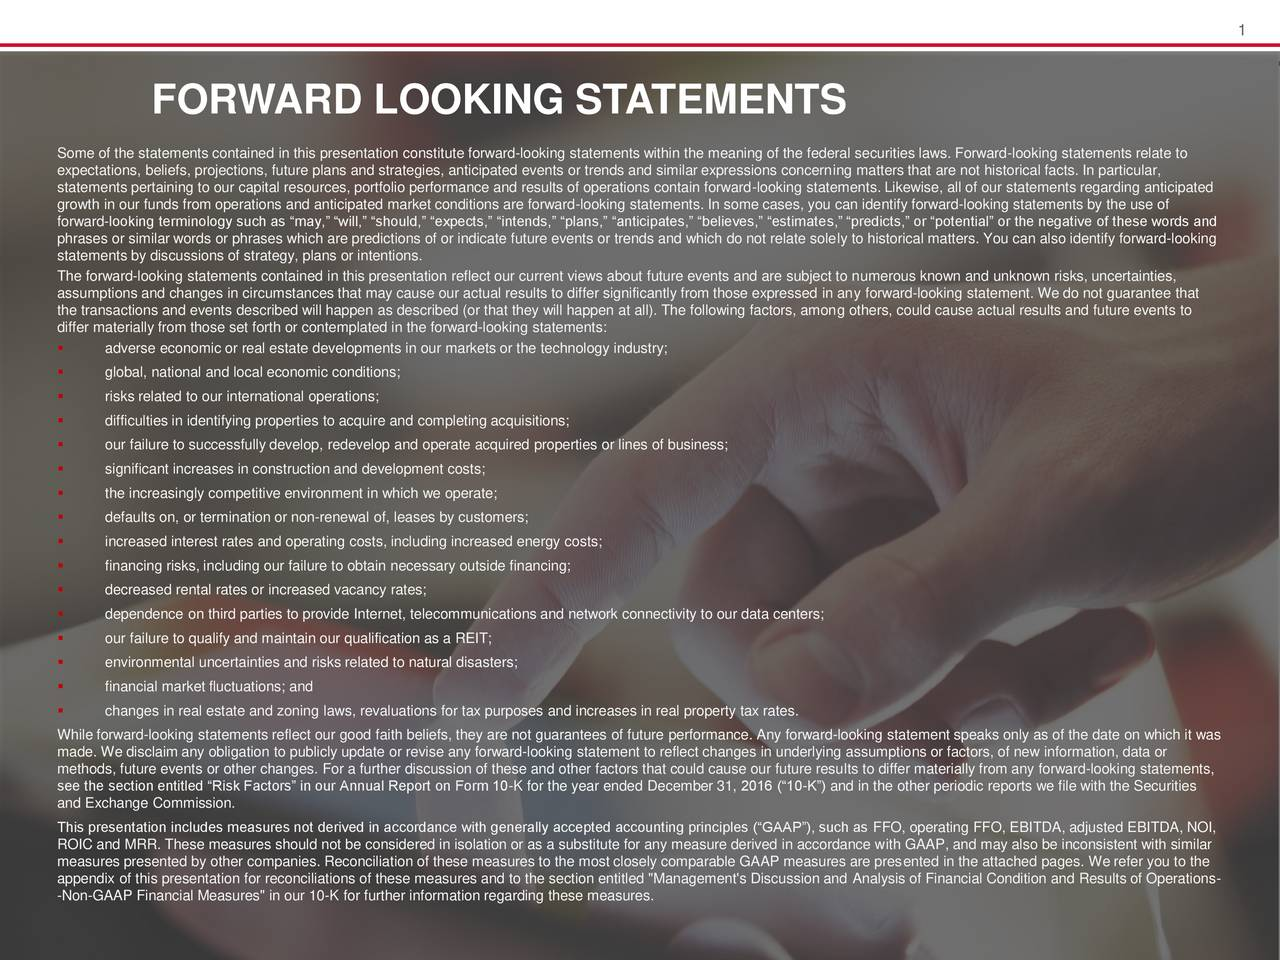 FORWARD LOOKING STATEMENTS Some of the statements contained in this presentation constitute forward-looking statements within the meaning of the federal securities laws. Forward-looking statements relate to expectations, beliefs, projections, future plans and strategies, anticipated events or trends and similar expressions concerning matters that are not historical facts. In particular, statements pertaining to our capital resources, portfolio performance and results of operations contain forward-looking statements. Likewise, all of our statements regarding anticipated growth in our funds from operations and anticipated market conditions are forward-looking statements. In some cases, you can identify forward-looking statements by the use of forward-looking terminology such as may, will, should, expects, intends, plans, anticipates, believes, estimates, predicts, or potential or the negative of these words and phrases or similar words or phrases which are predictions of or indicate future events or trends and which do not relate solely to historical matters. You can also identify forward-looking statements by discussions of strategy, plans or intentions. The forward-looking statements contained in this presentation reflect our current views about future events and are subject to numerous known and unknown risks, uncertainties, assumptions and changes in circumstances that may cause our actual results to differ significantly from those expressed in any forward-looking statement. We do not guarantee that the transactions and events described will happen as described (or that they will happen at all). The following factors, among others, could cause actual results and future events to differ materially from those set forth or contemplated in the forward-looking statements: adverse economic or real estate developments in our markets or the technology industry; global, national and local economic conditions; risks related to our international operations; difficulties in i